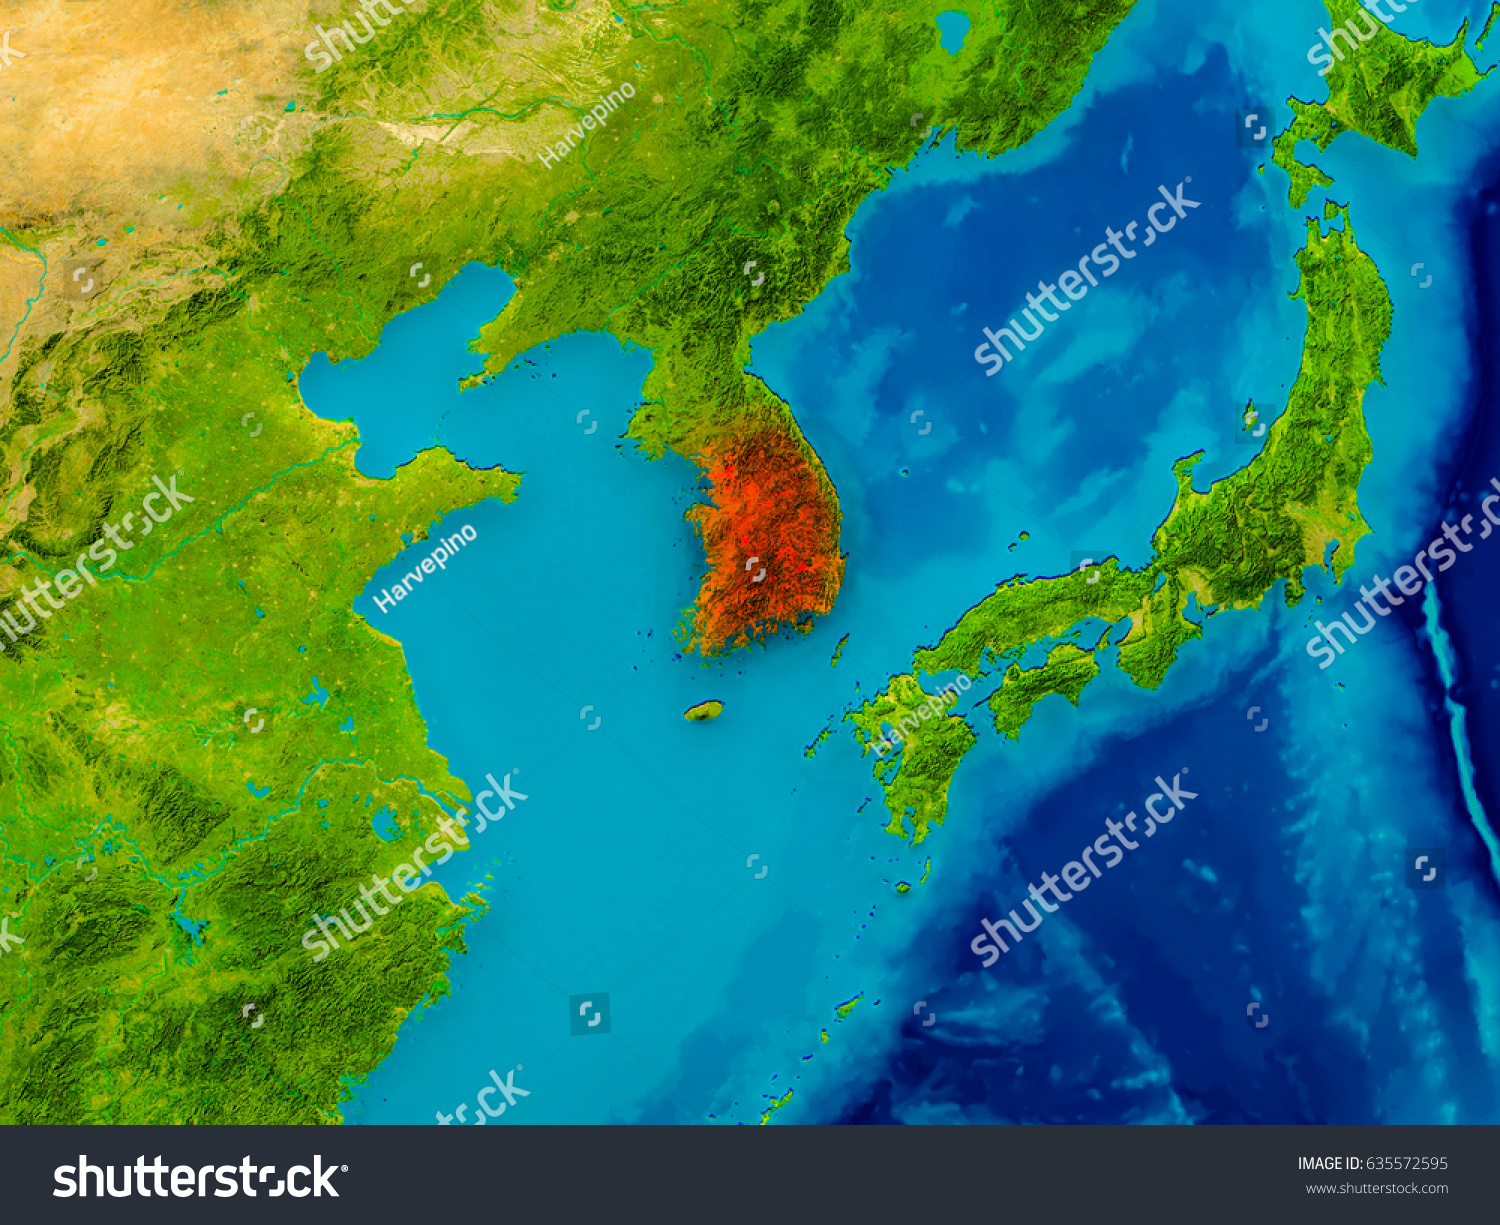 South korea highlighted red on physical stock illustration 635572595 south korea highlighted red on physical stock illustration 635572595 shutterstock gumiabroncs Choice Image